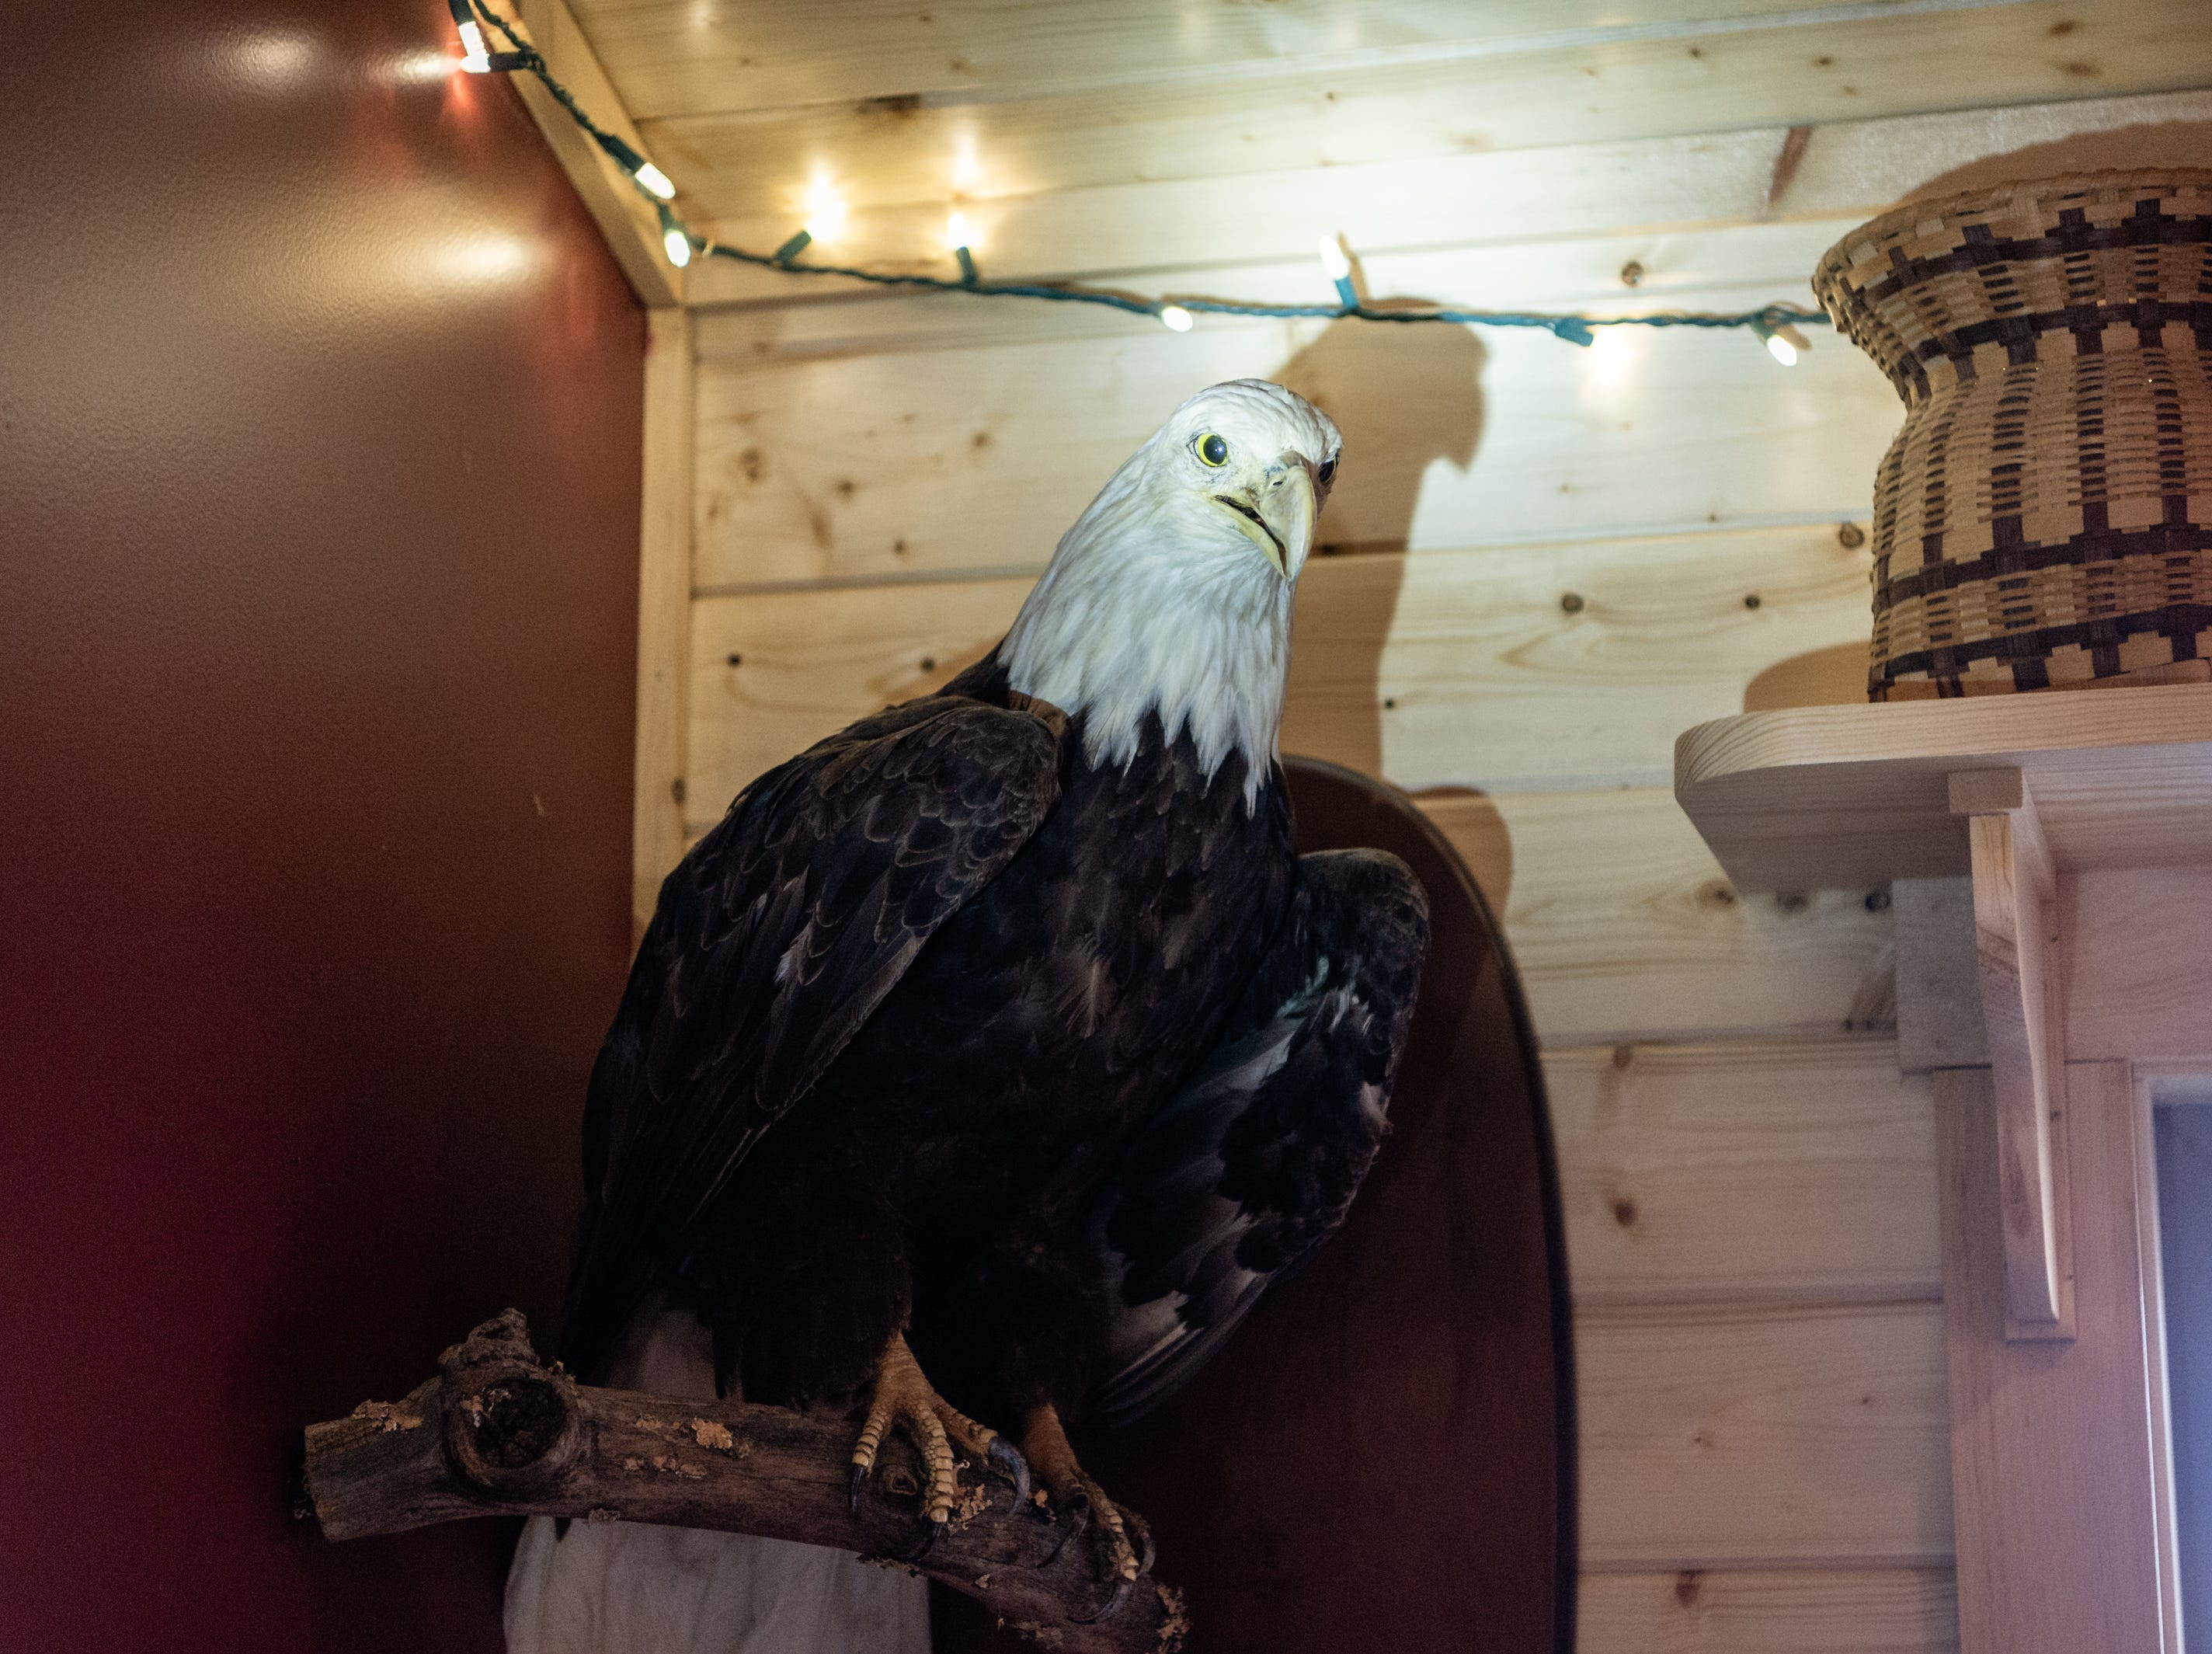 A taxidermied bald eagle in the log cabin home of Vangie Stephens and Tommy Stephens in Cherokee which was designed by Vangie.